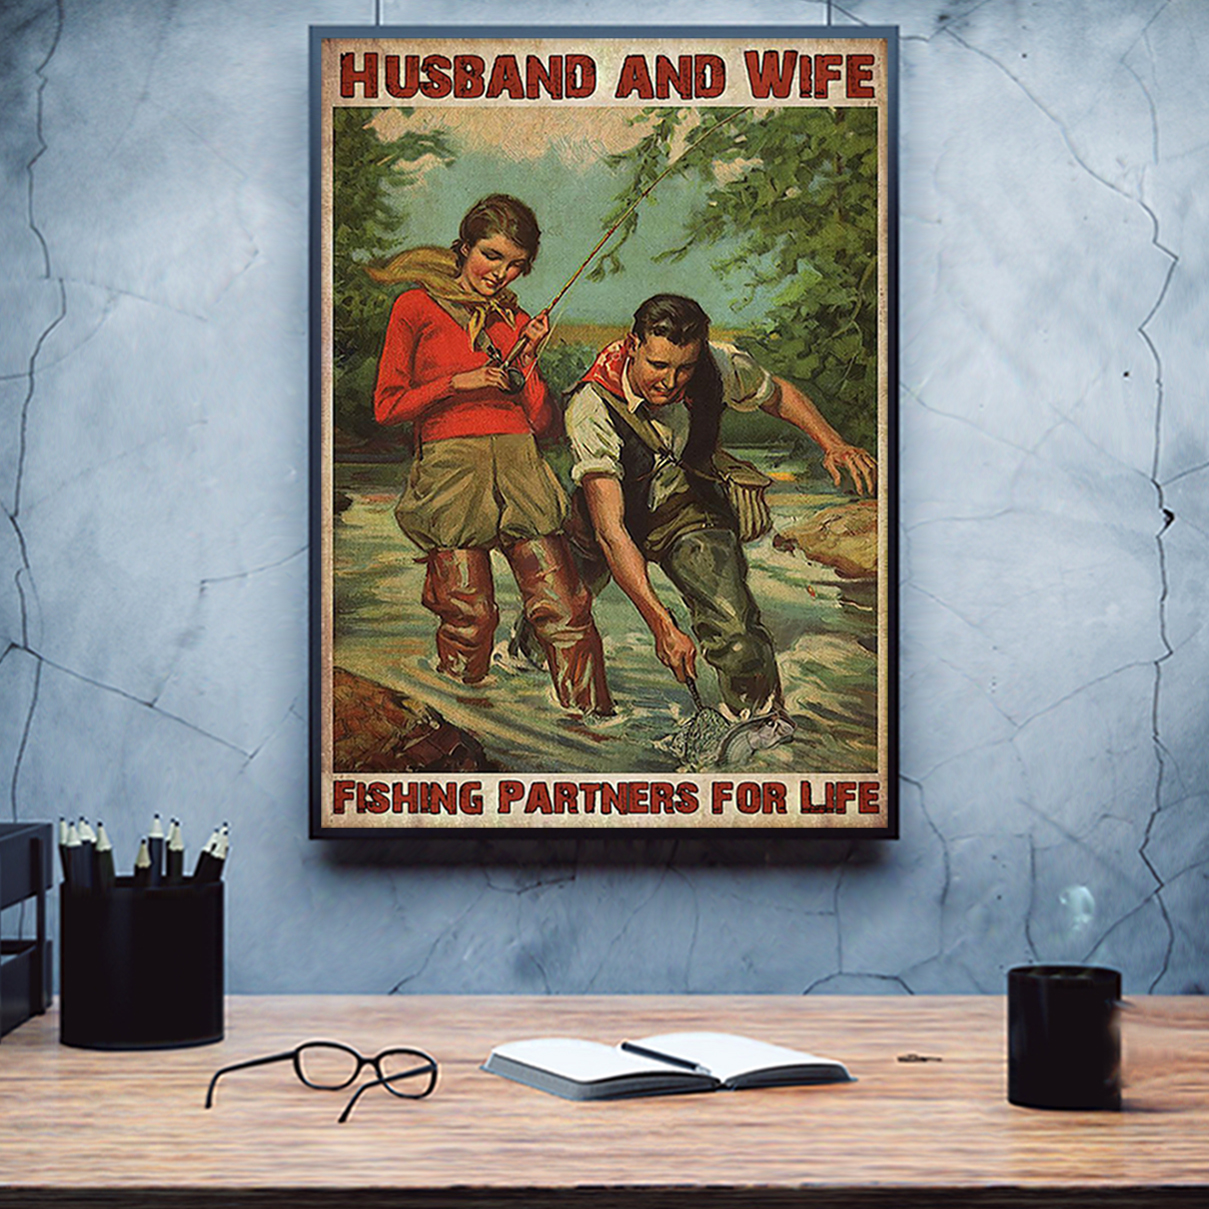 Husband and wife fishing partners for life poster A3